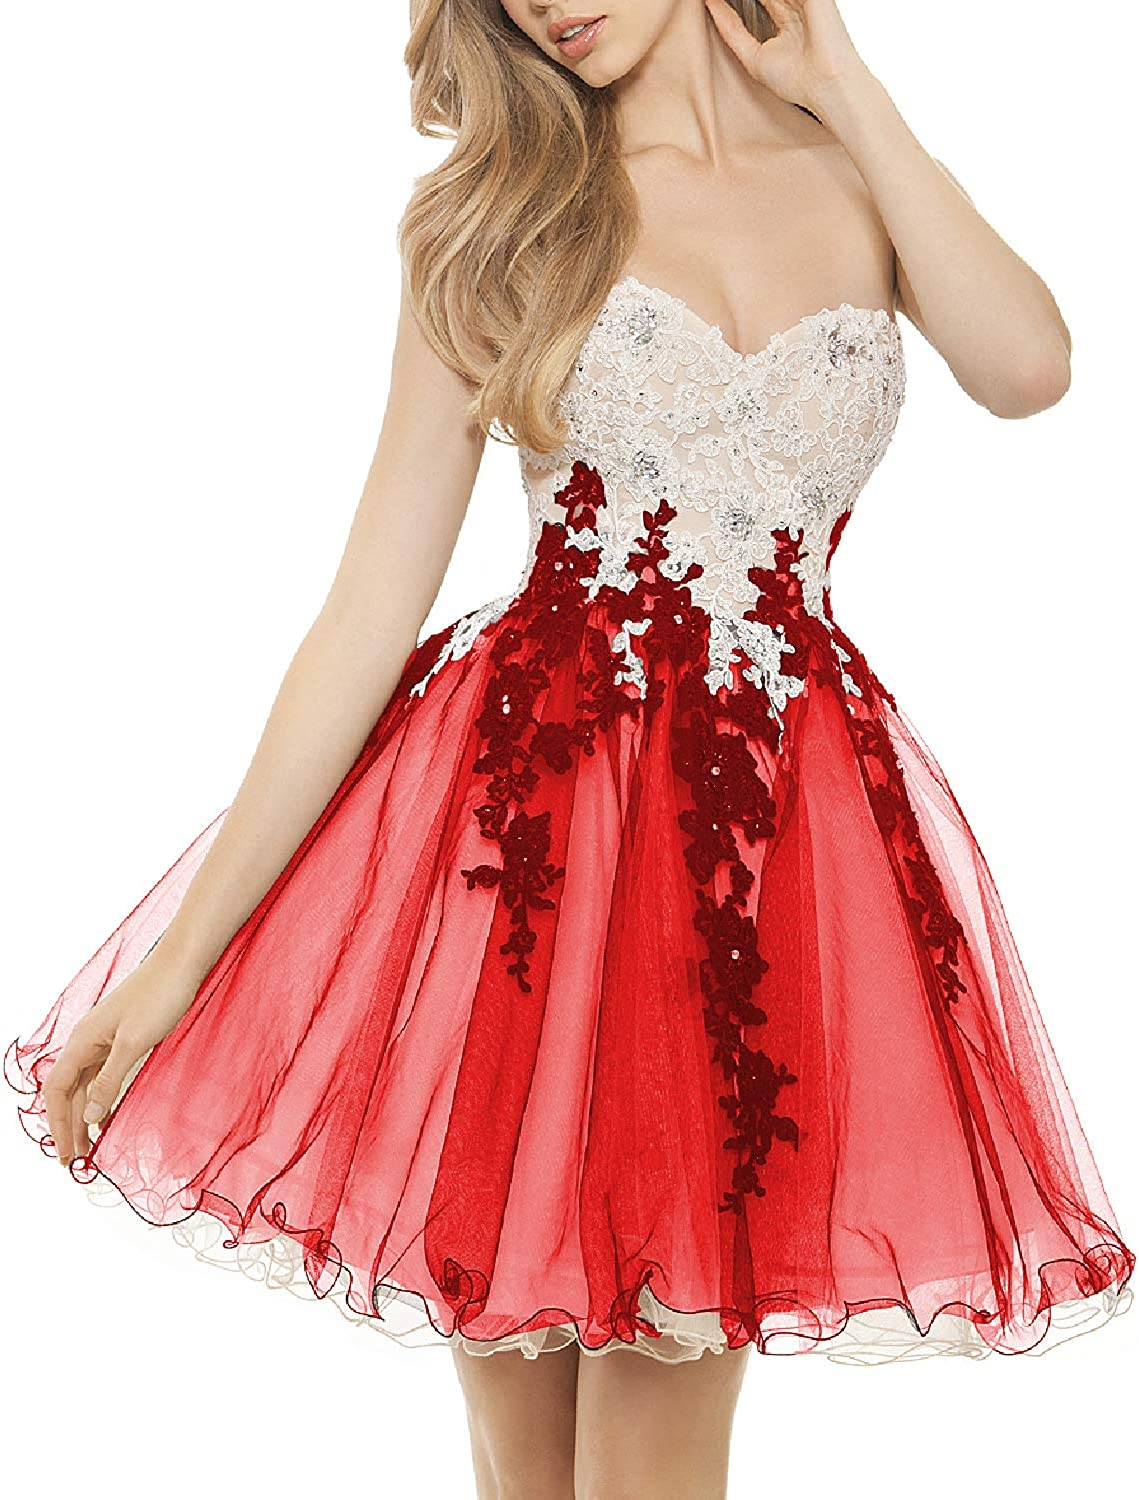 EverBeauty Womens Sweetheart Lace Applique Homecoming Dress Short Tulle Prom Party Gown